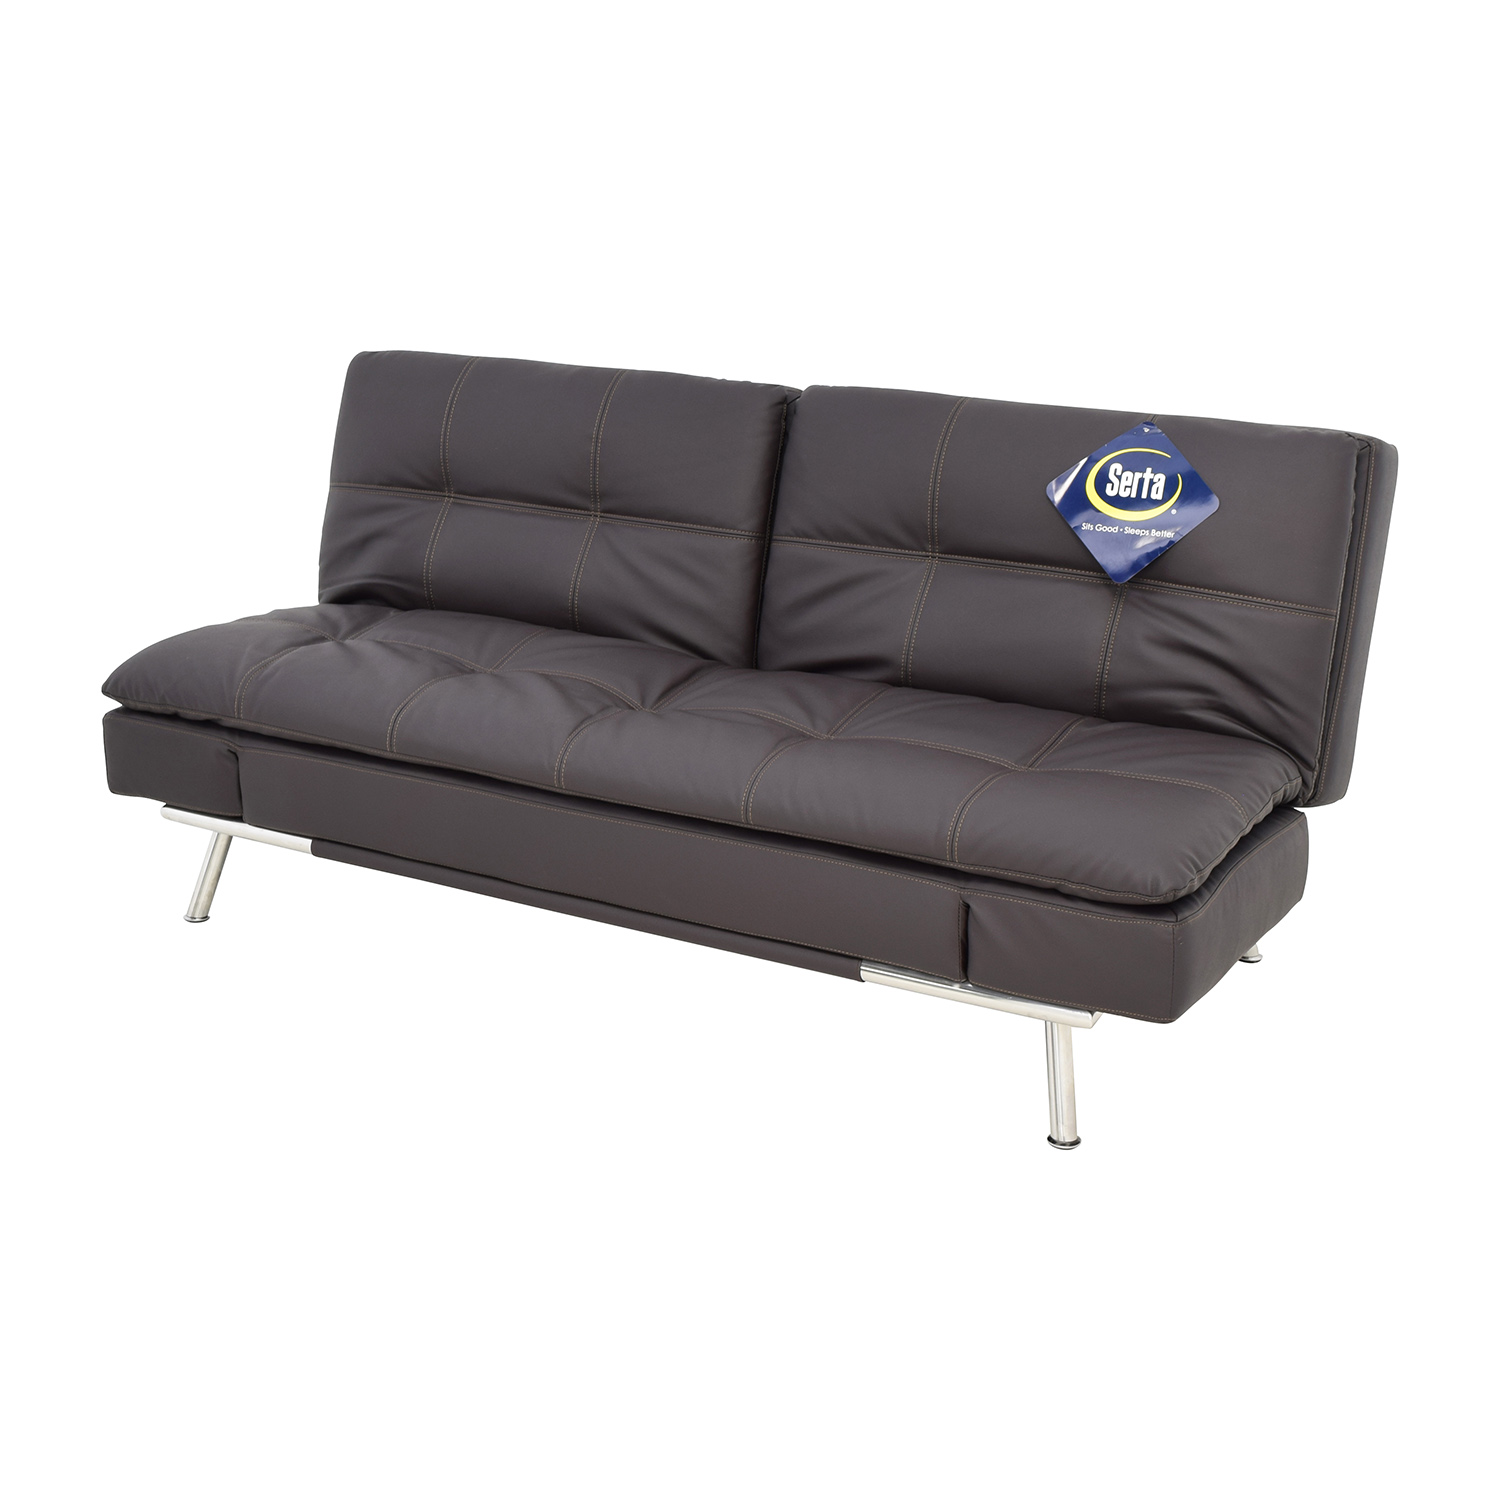 43% OFF   Lifestyle Solutions Lifestyle Solutions Serta Matrix Leather  Sleeper Sofa / Sofas